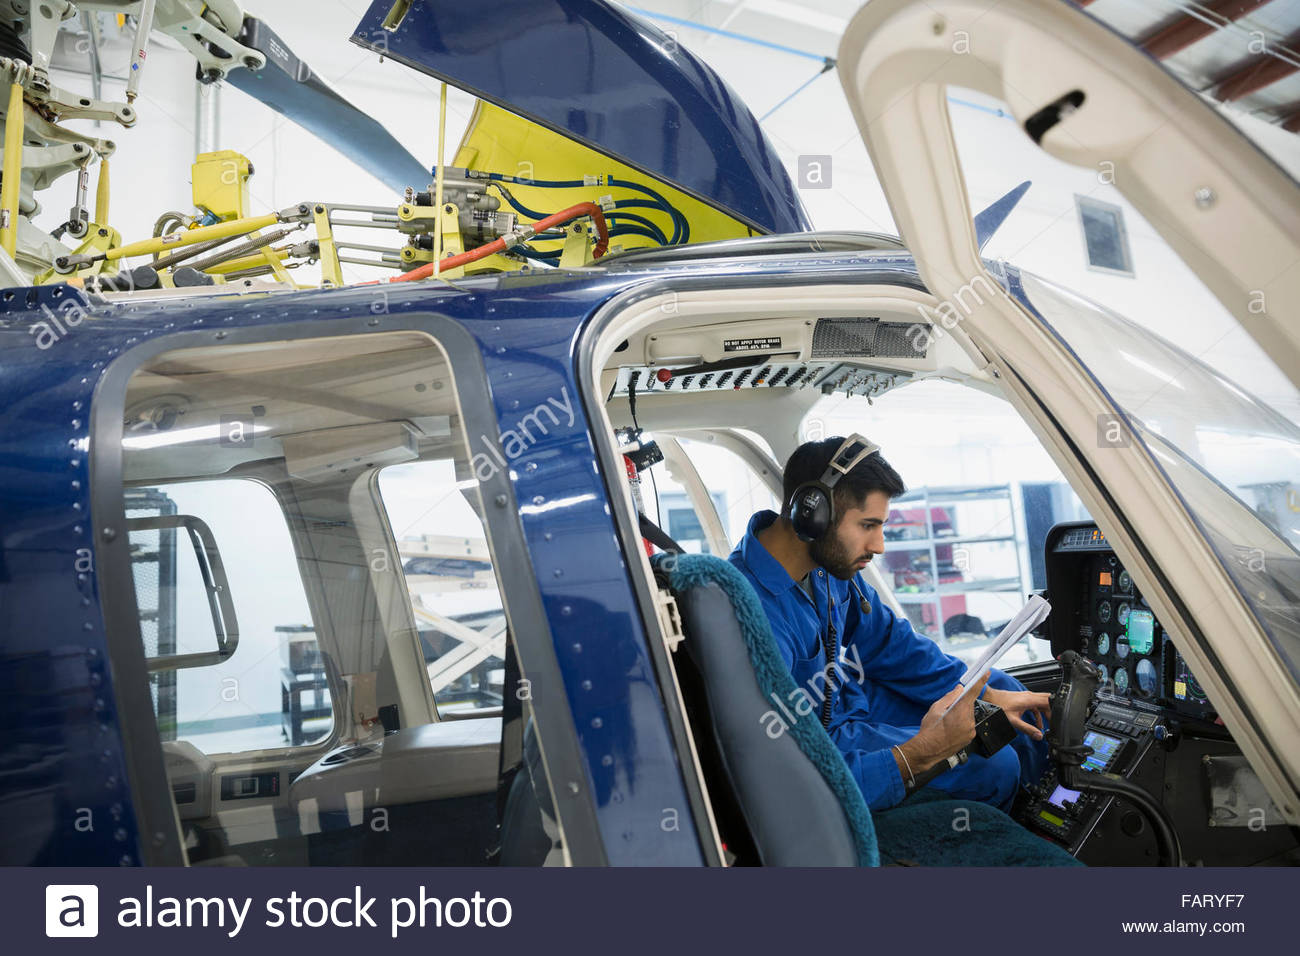 Mechanic checking instruments in helicopter cockpit - Stock Image